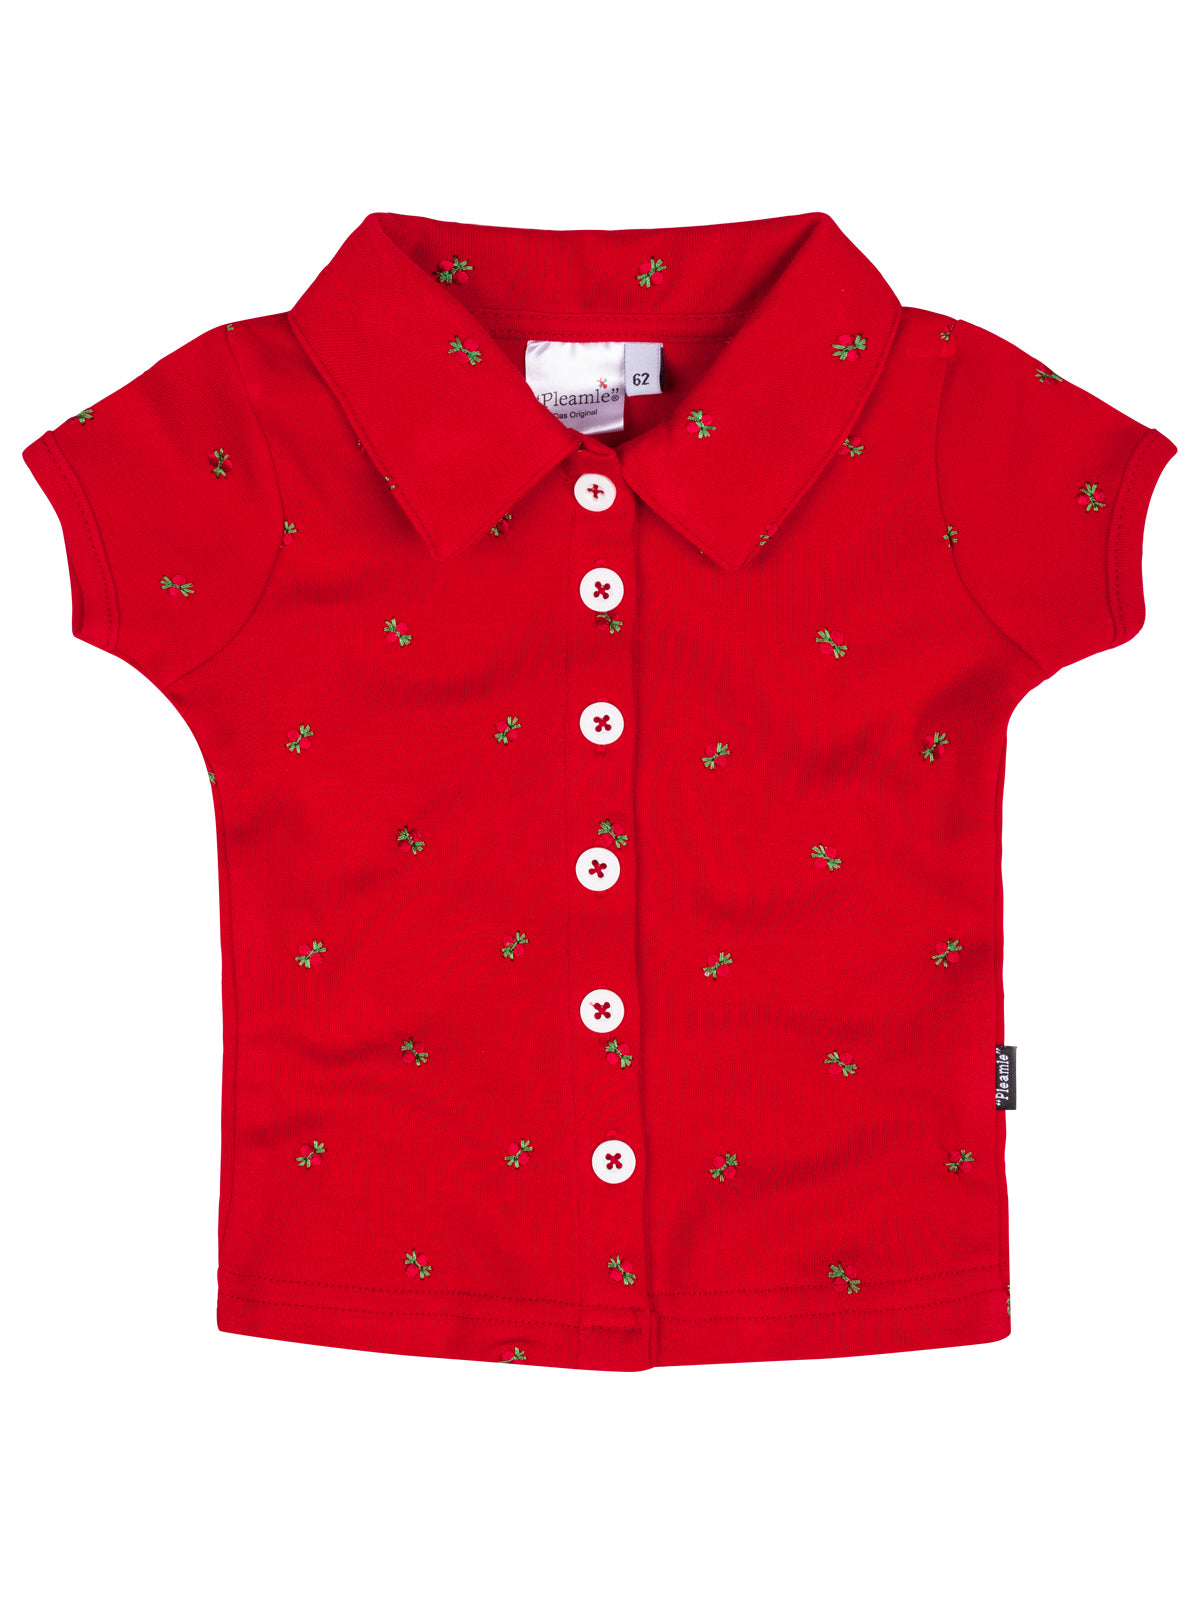 Pleamle Baby Polo Kurzarm Original rot